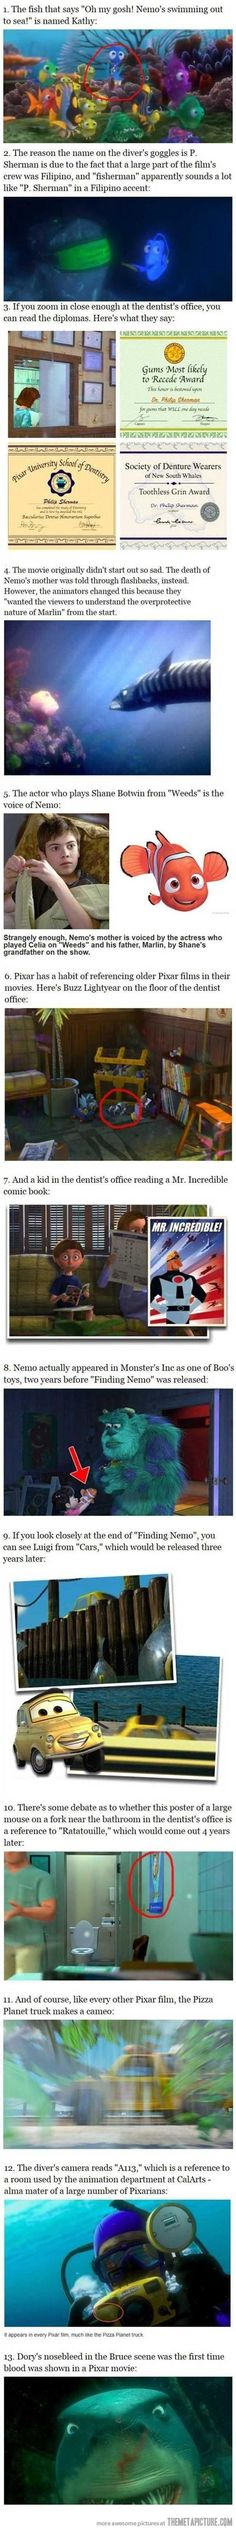 Facts About Finding Nemo…